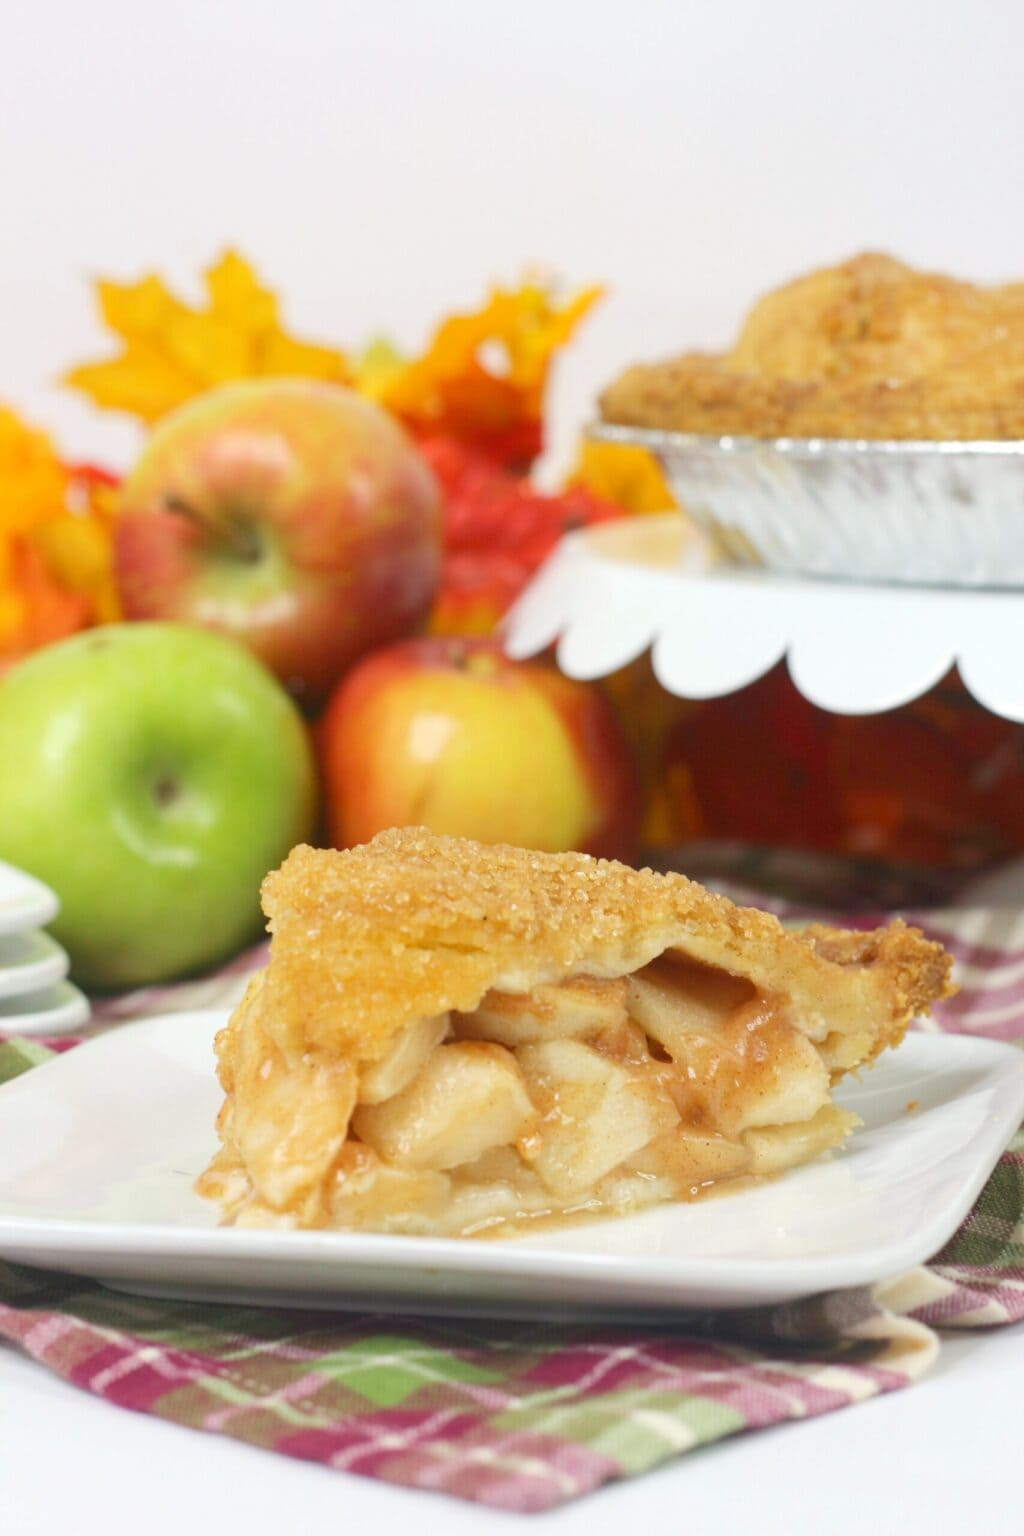 slice of apple pie on a white plate in front of a white cake plate and green and red apples